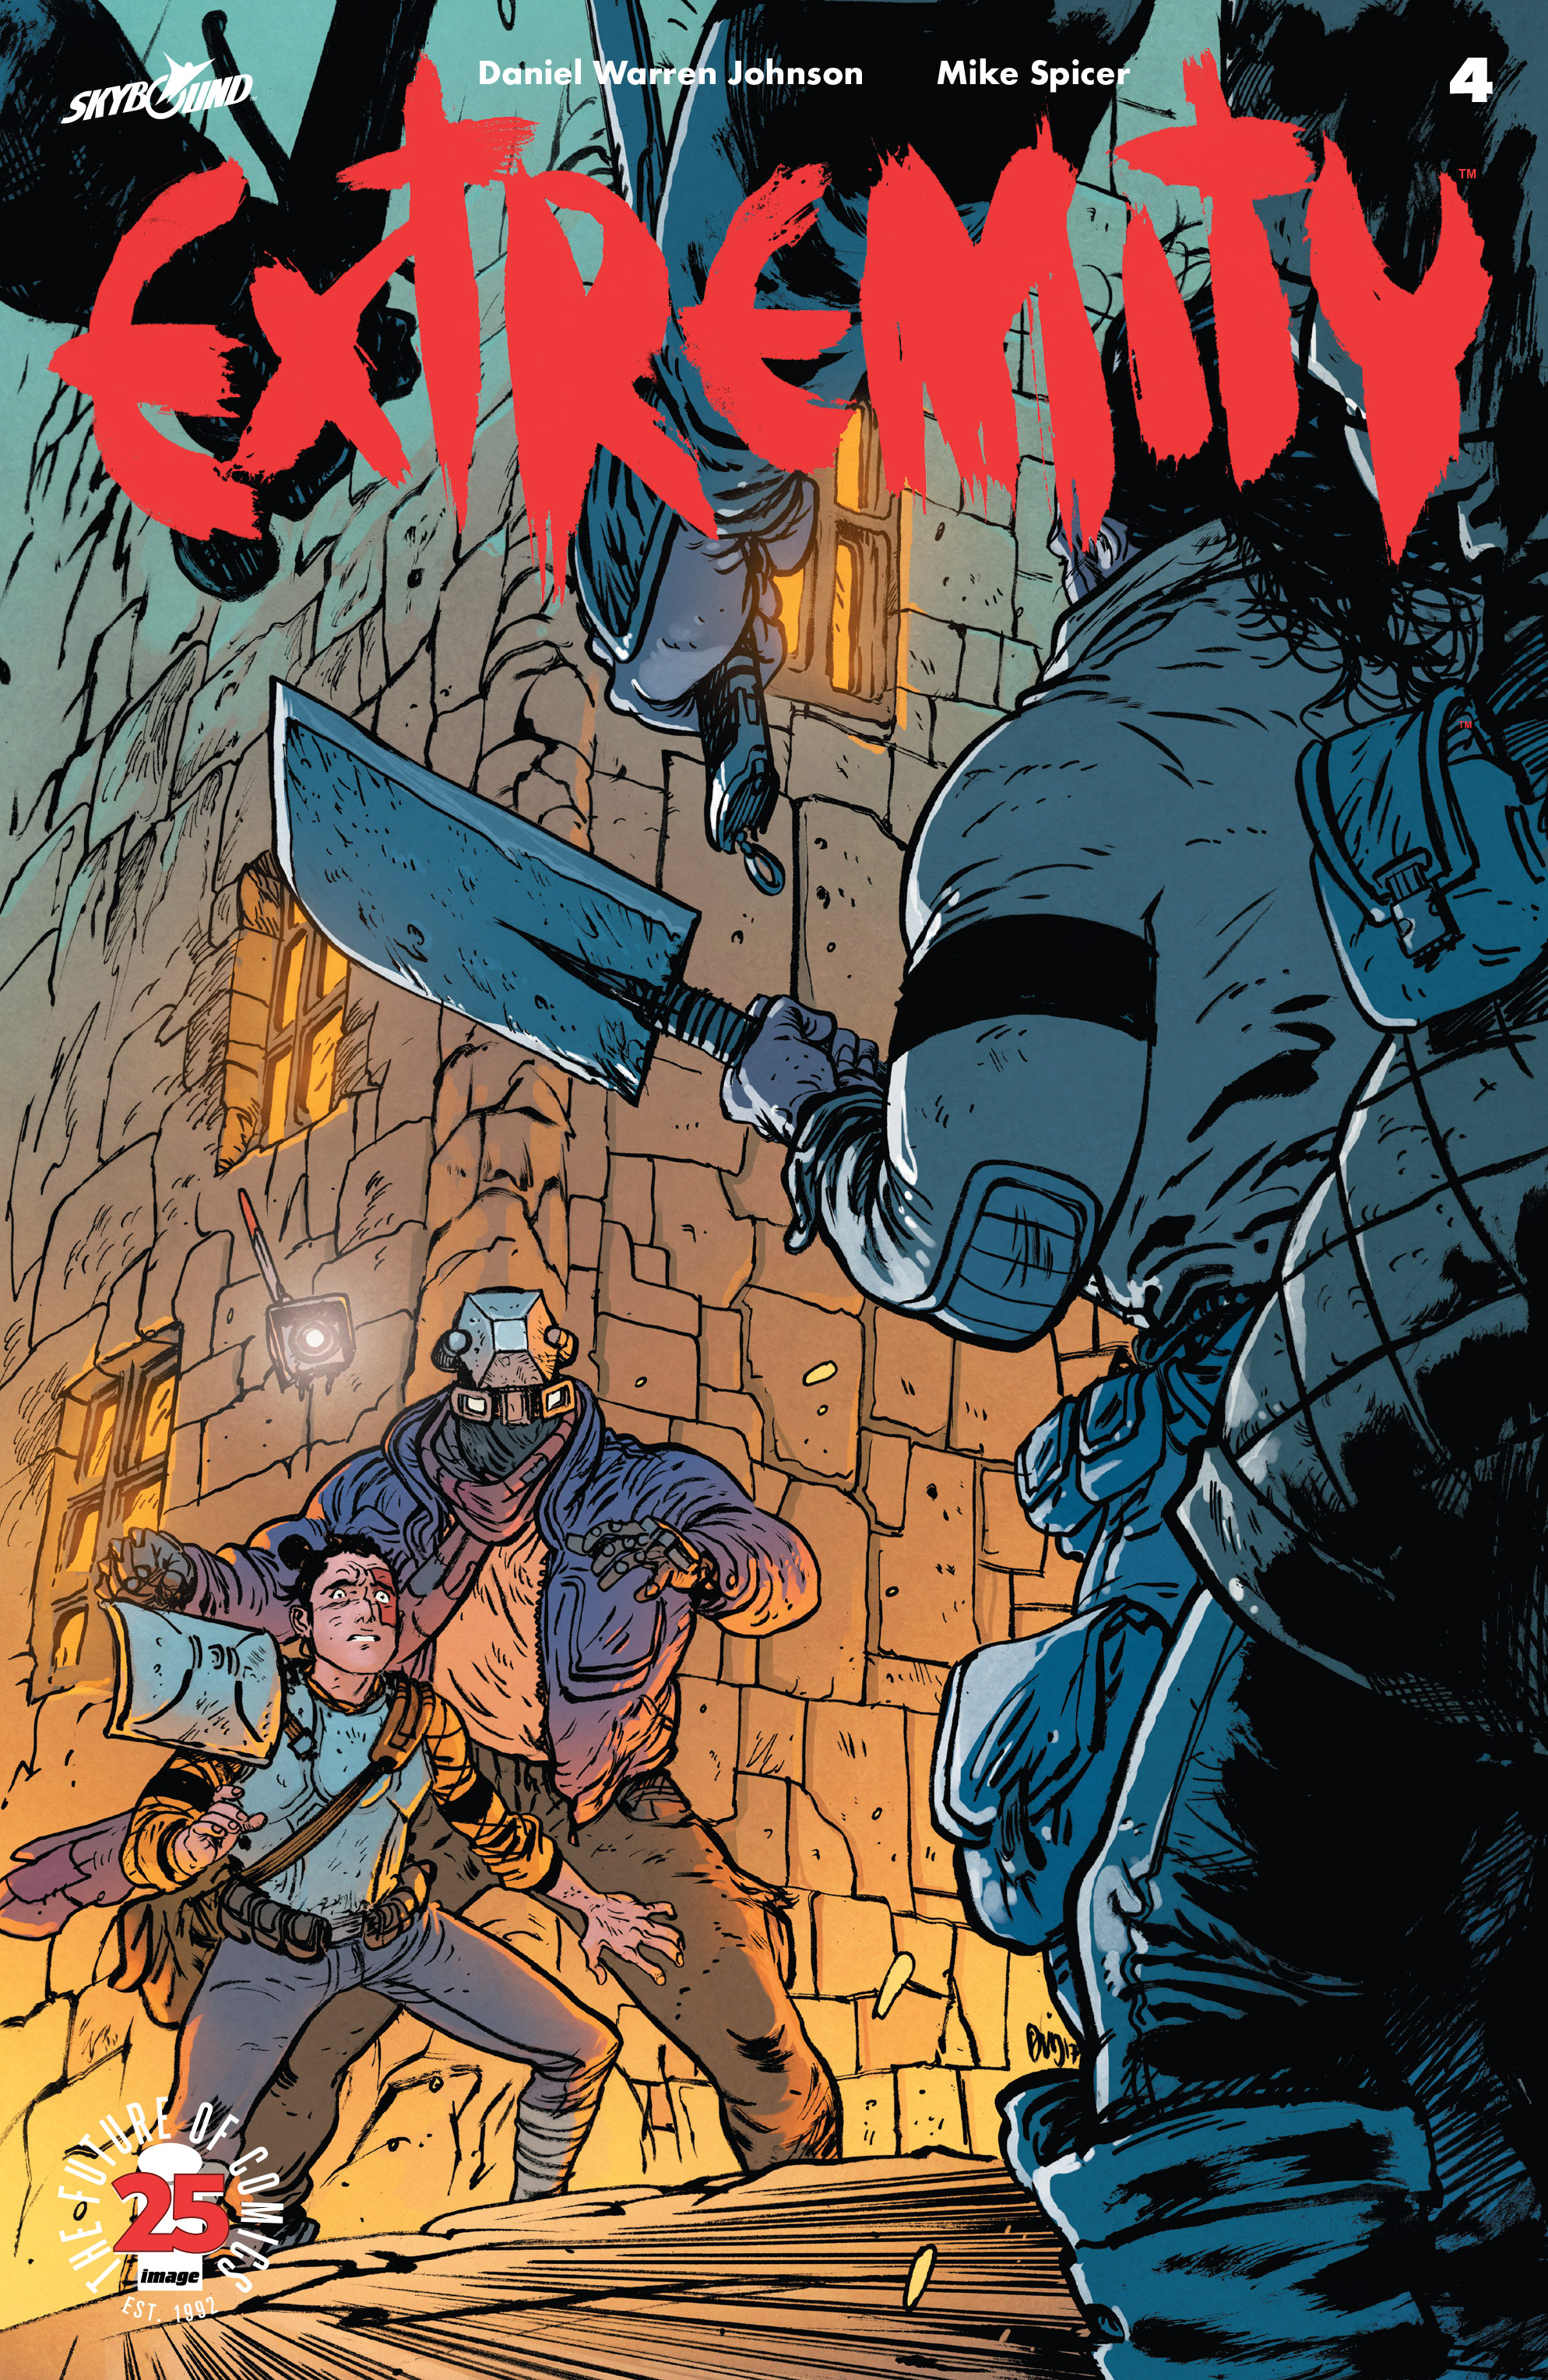 Read online Extremity comic -  Issue #4 - 1